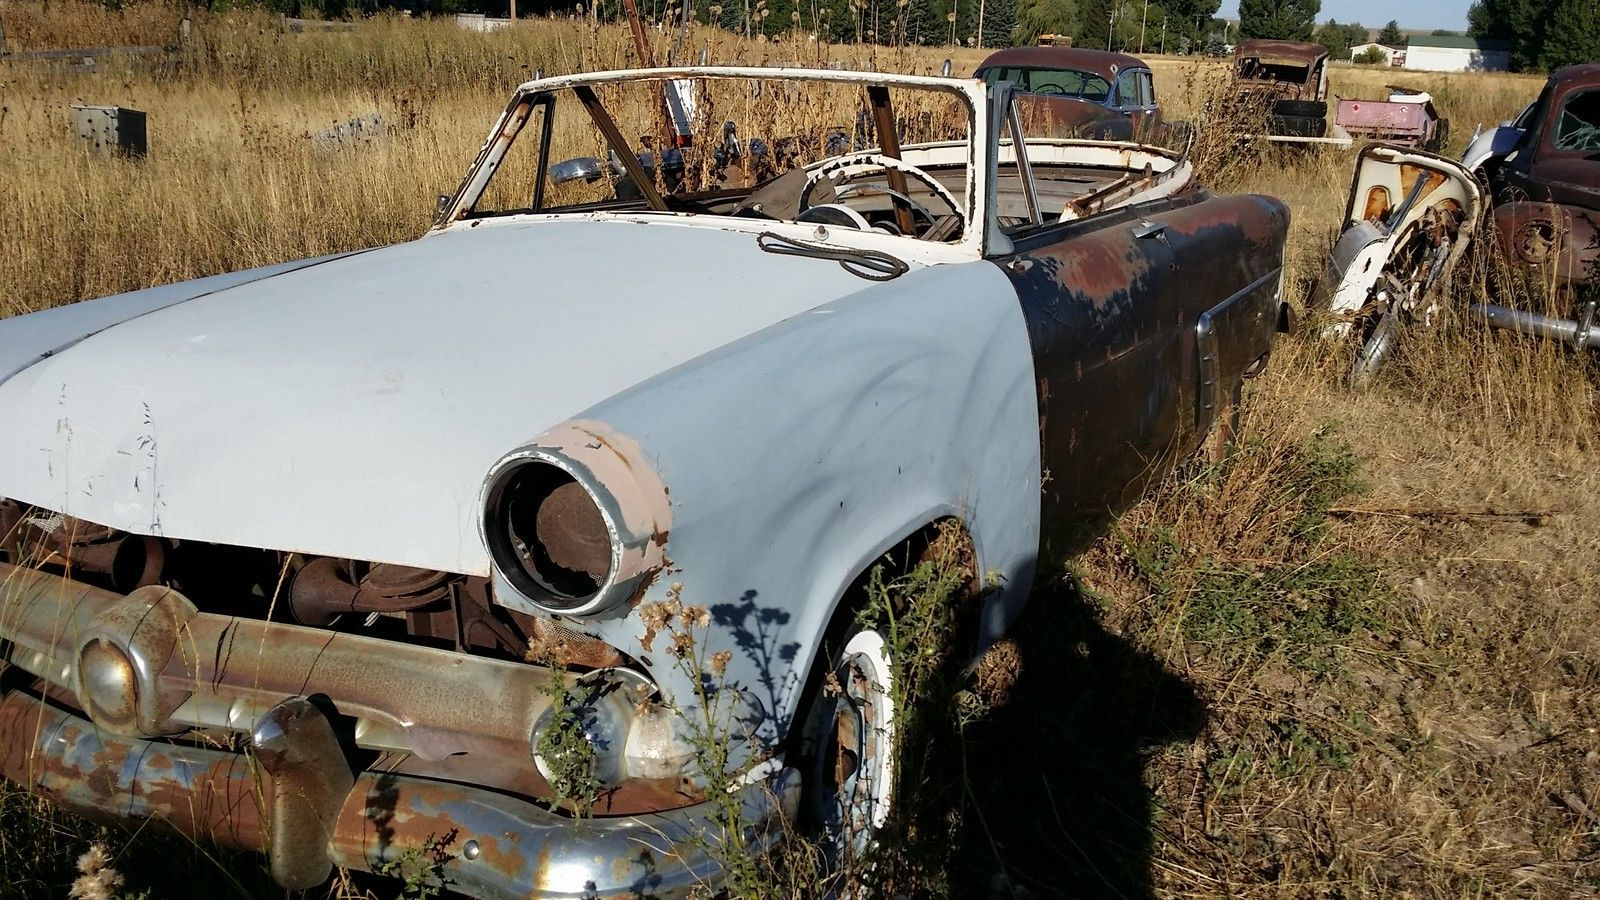 1954 Ford Crestline Sunliner Convertible Project car | Project cars ...